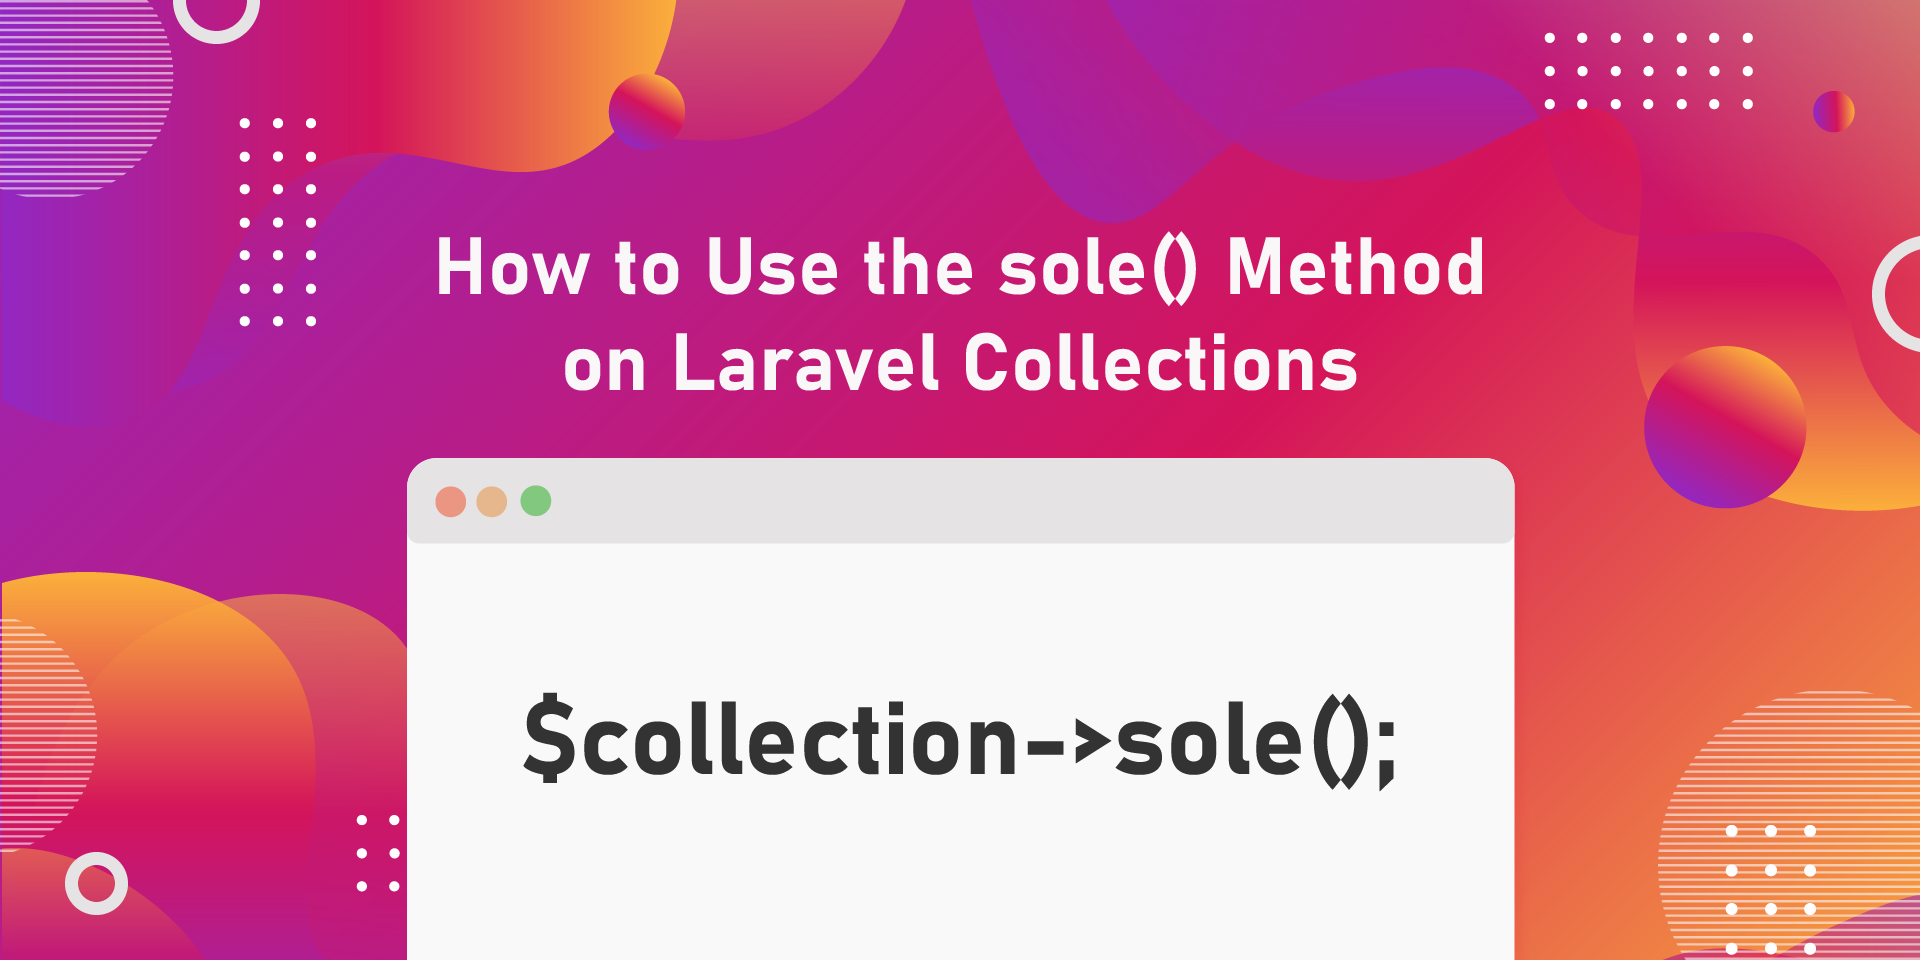 Learn how to use the new sole() method on Laravel collections. This feature was added in Laravel 8.39 and is a great way of ensuring data integrity.